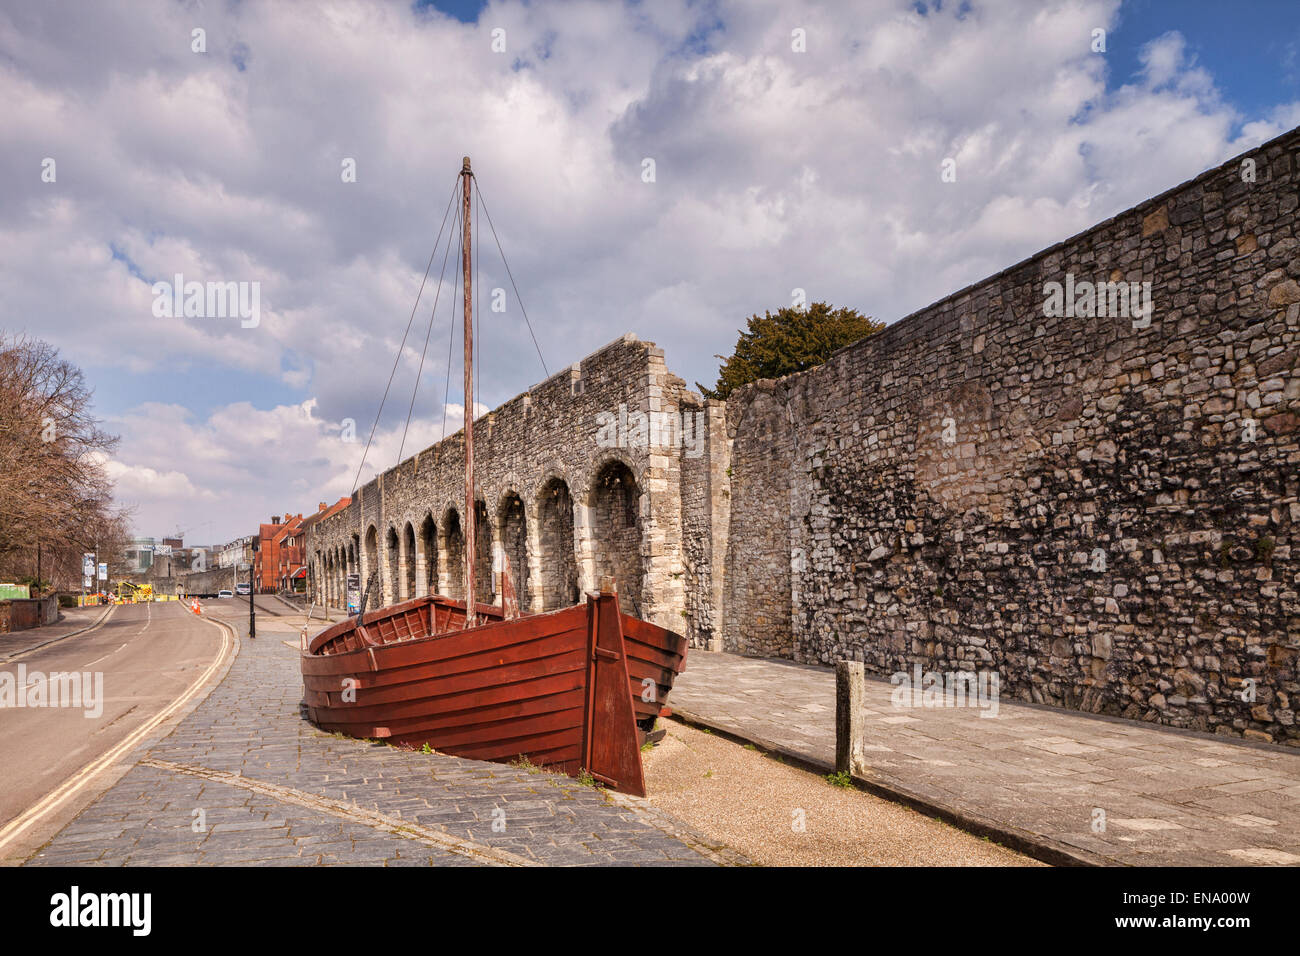 A section of the old city walls of Southampton. A boat has been placed to show where the sea was in medieval times. - Stock Image